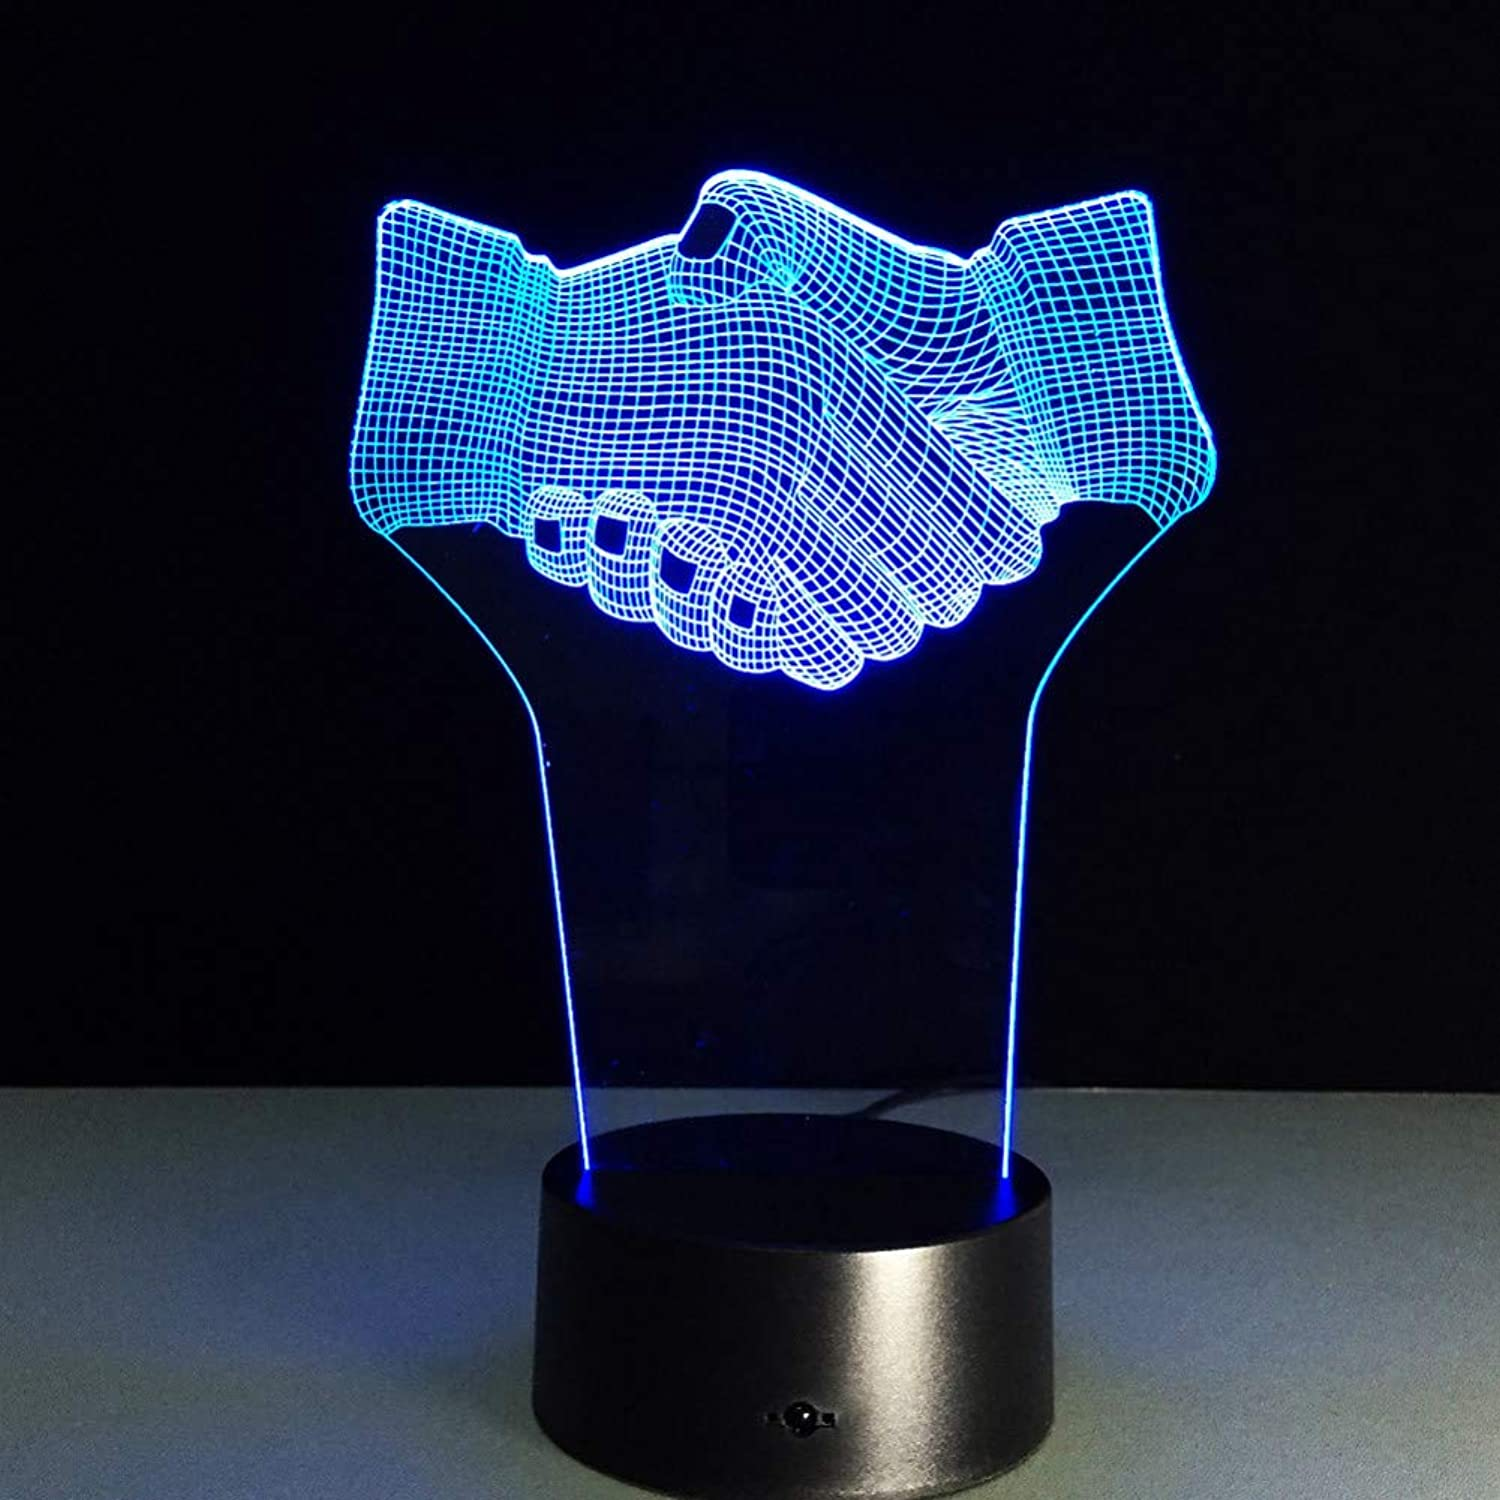 KAIYED 3D Night Light 7 color Shake Hands Office Desk Decor Atmosphere 3D Illusion Lamp for Friend Gift 3D Night Light Remote Touch Sensor Light